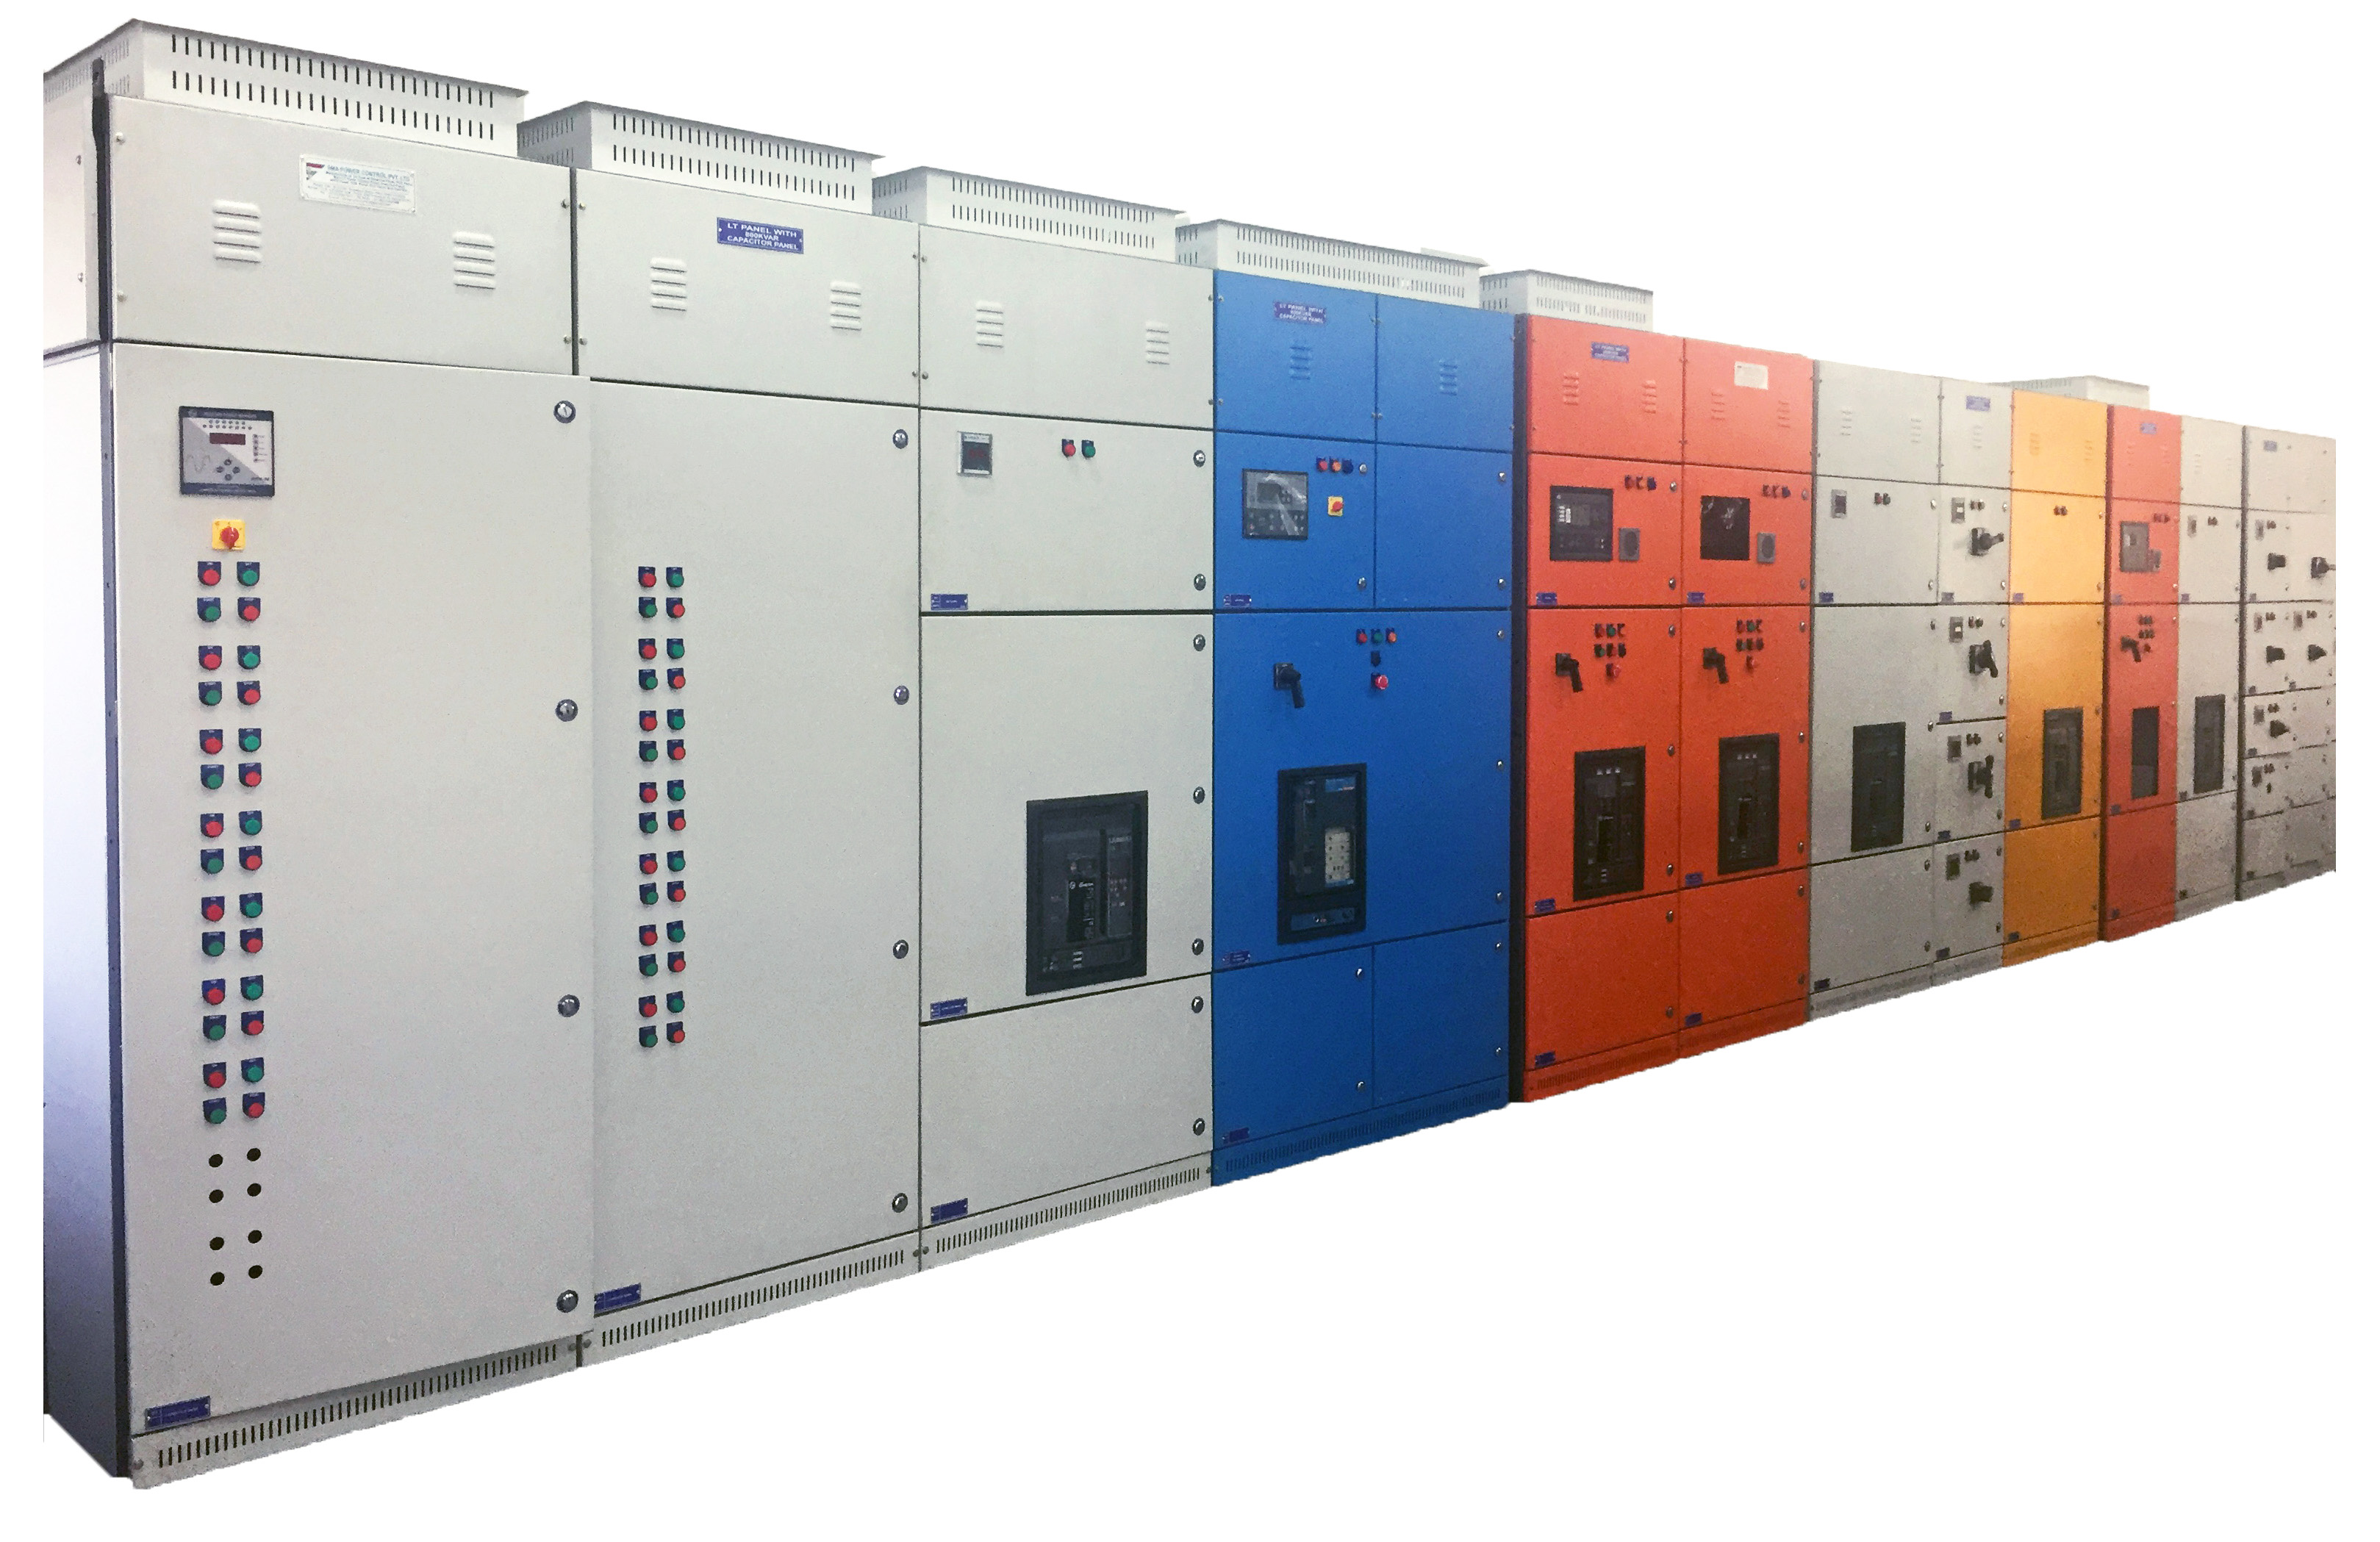 Lt Panels Manufacturer And Supplier Pcc Panels In Greater